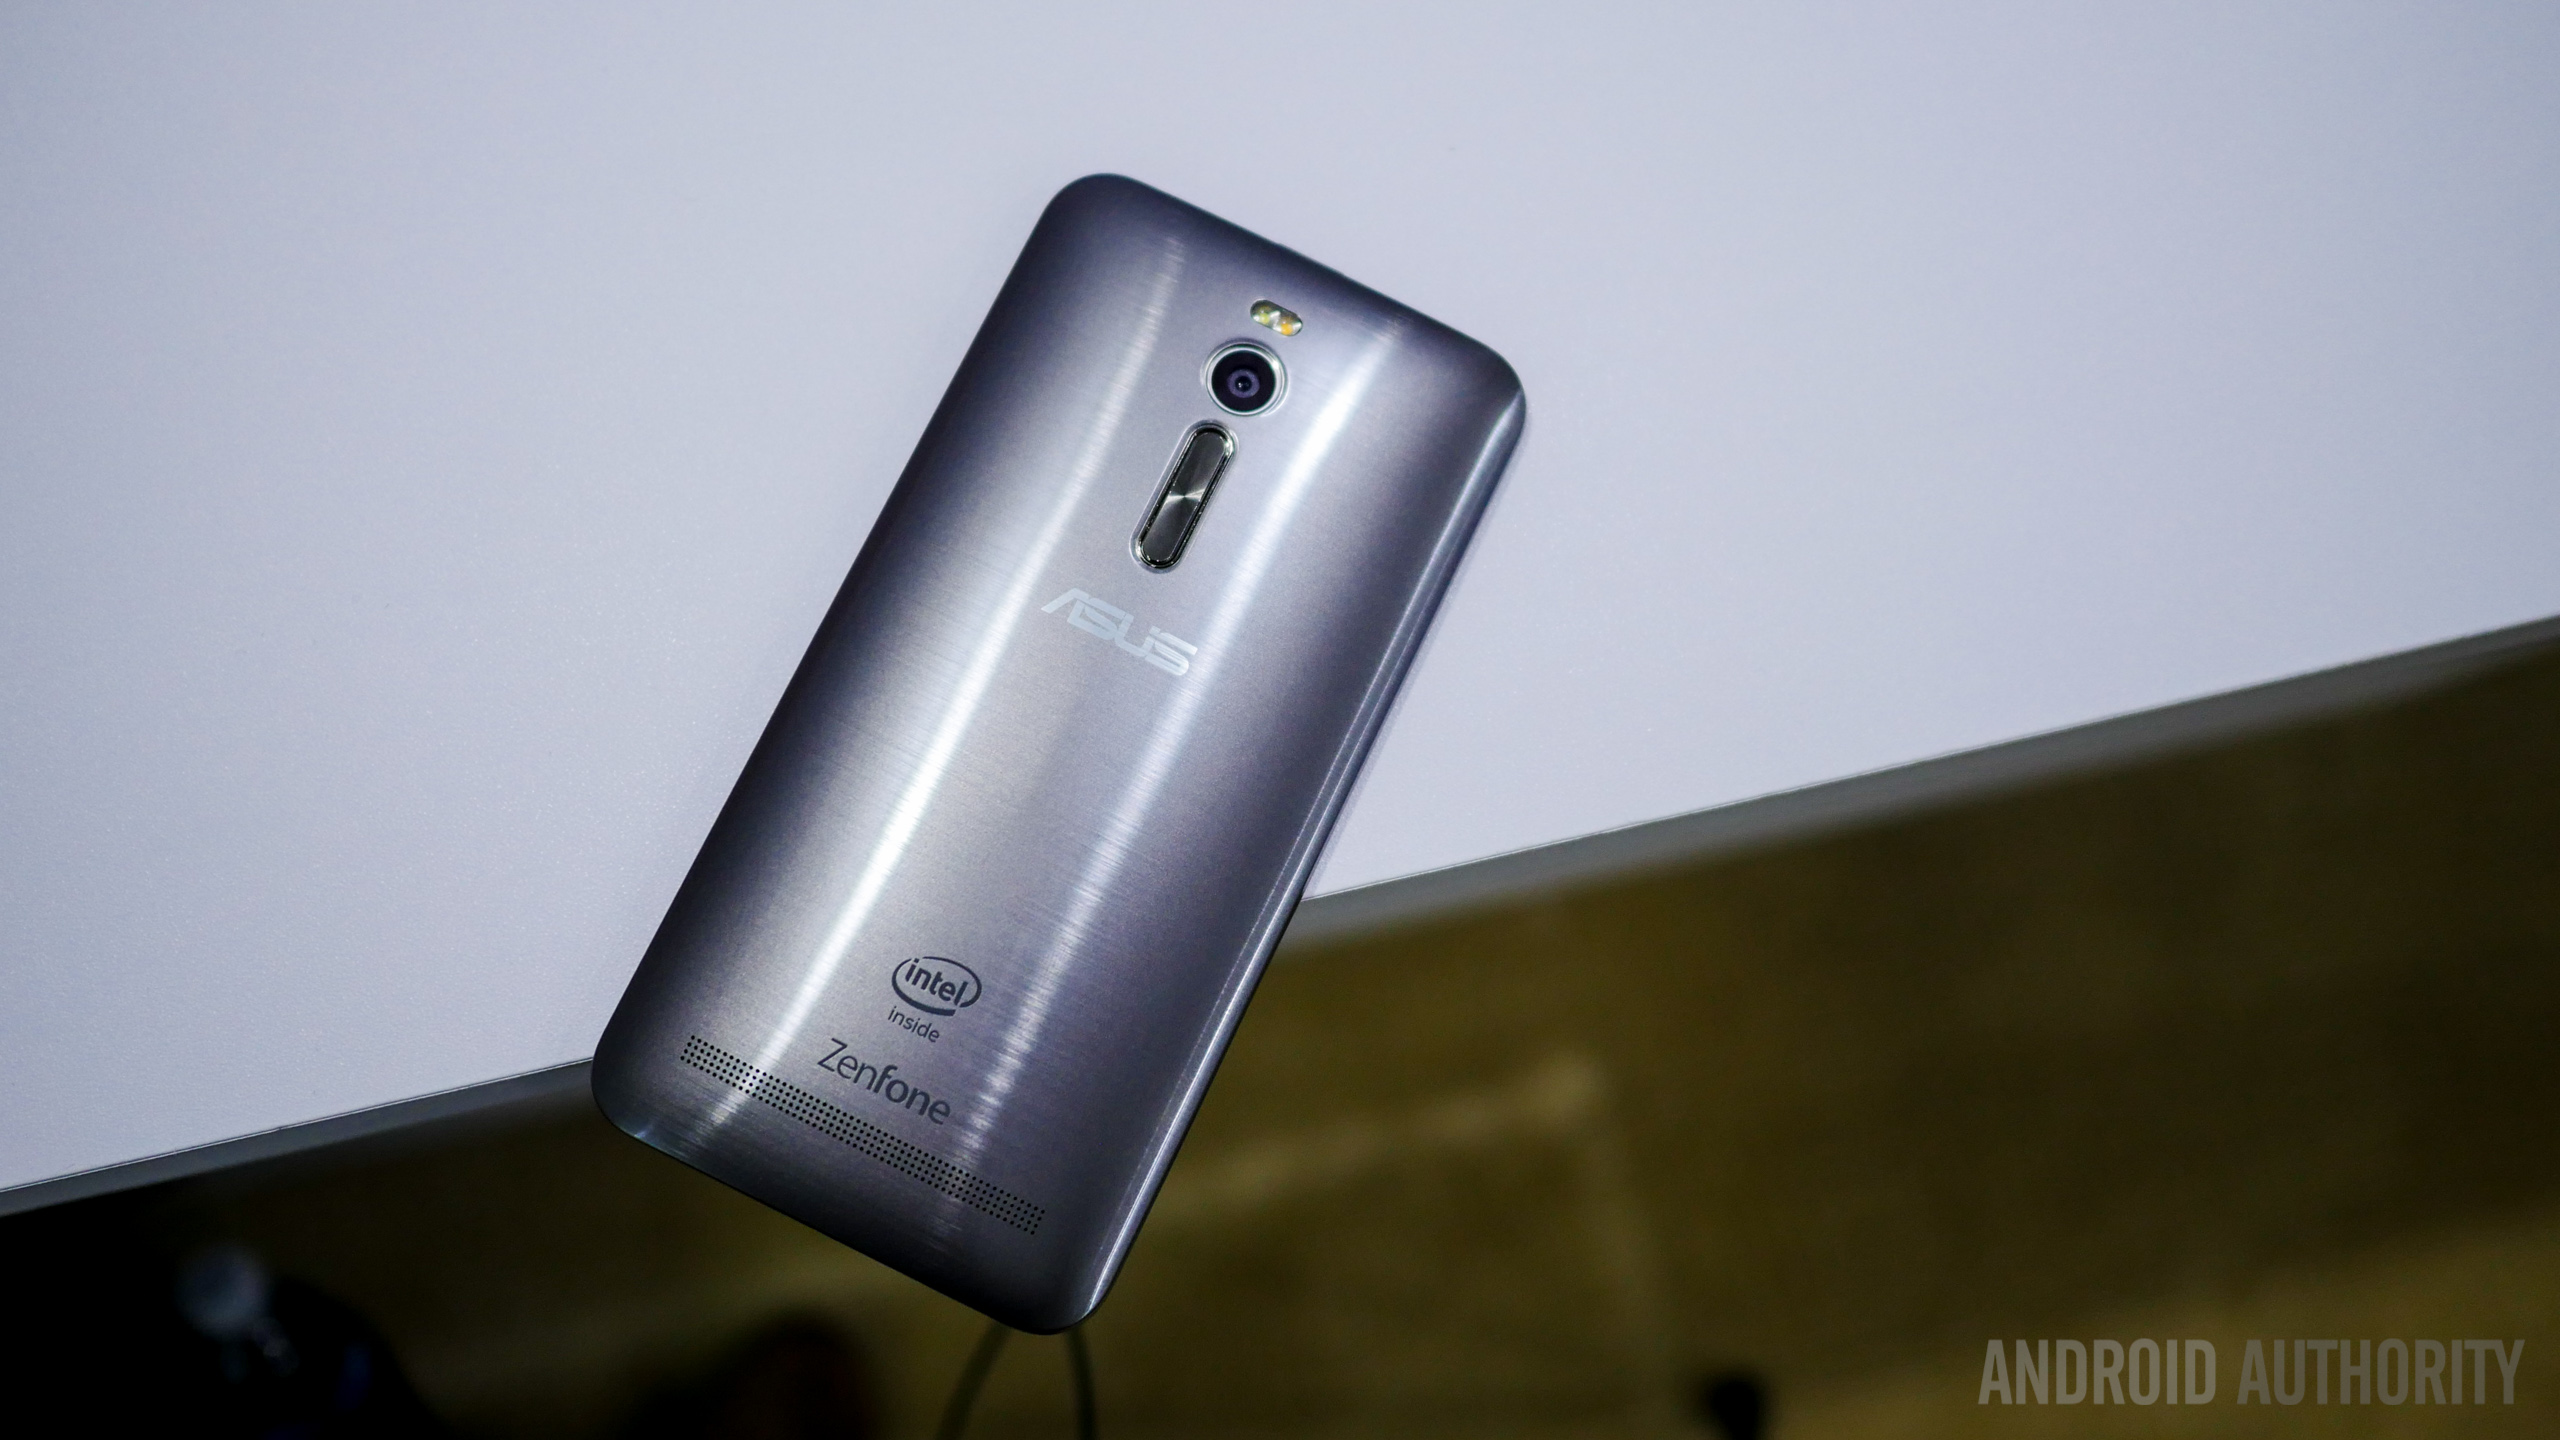 asus zenfone 2 first look a (10 of 19)